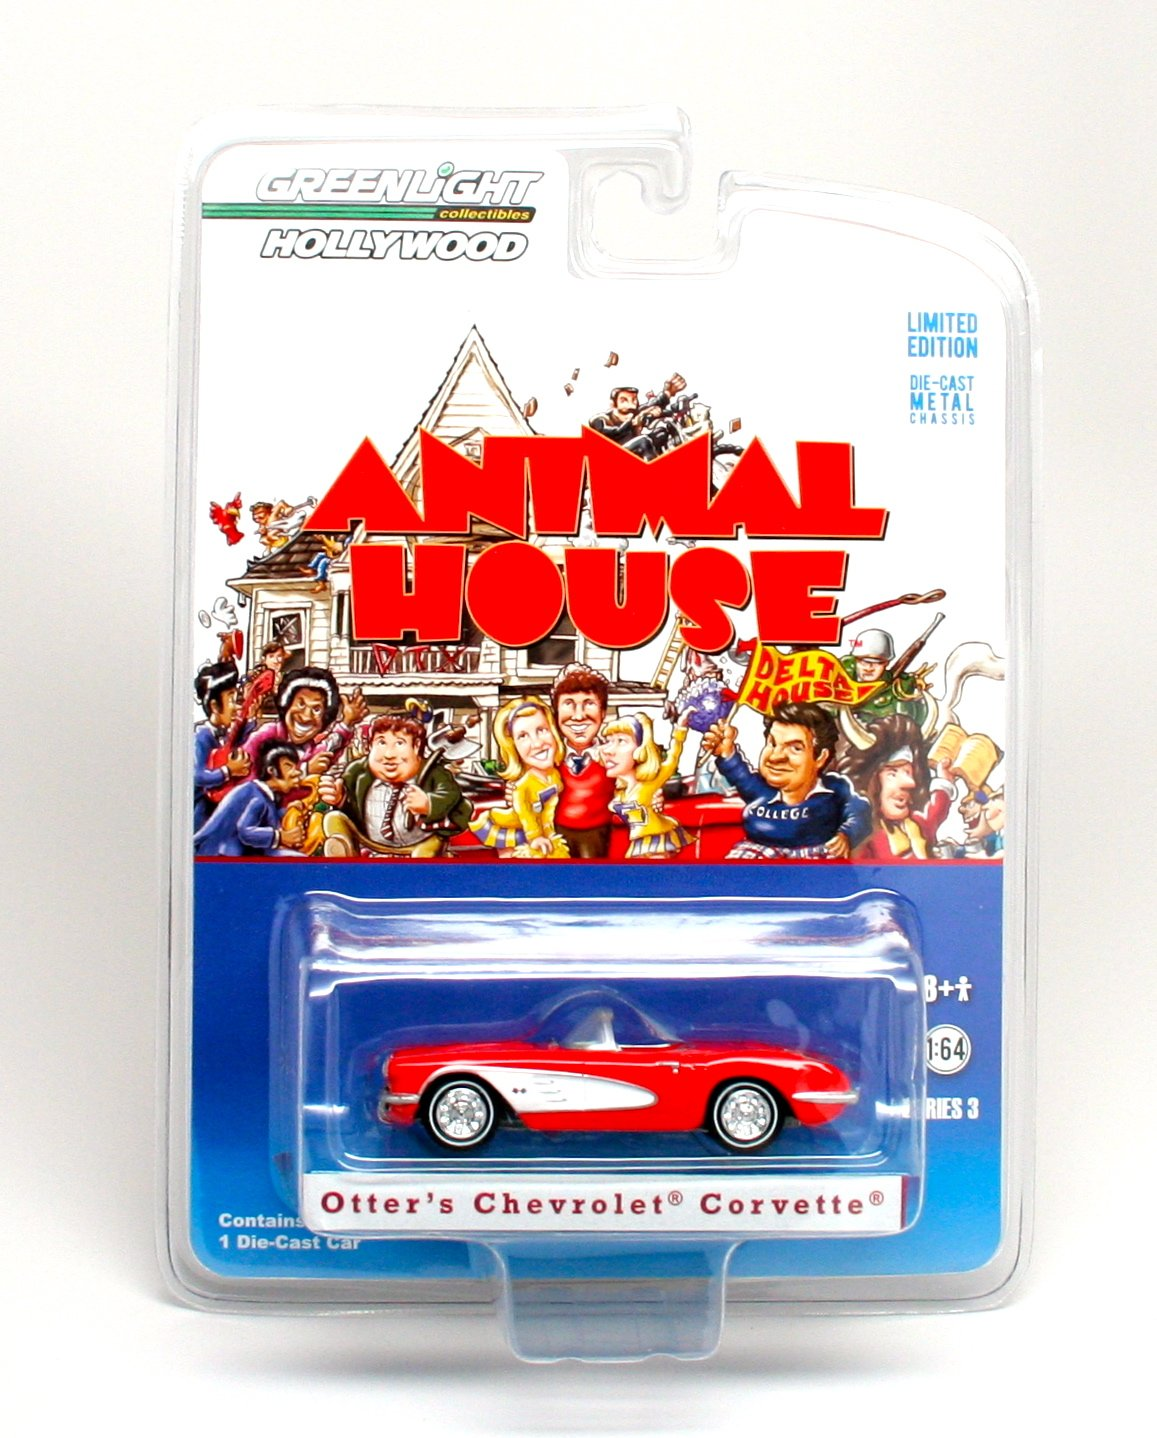 Greenlight Collectibles Hollywood Series 3 Animal House - 1959 Chevrolet Corvette Die Cast Vehicle by Greenlight Hollywood by Greenlight Hollywood